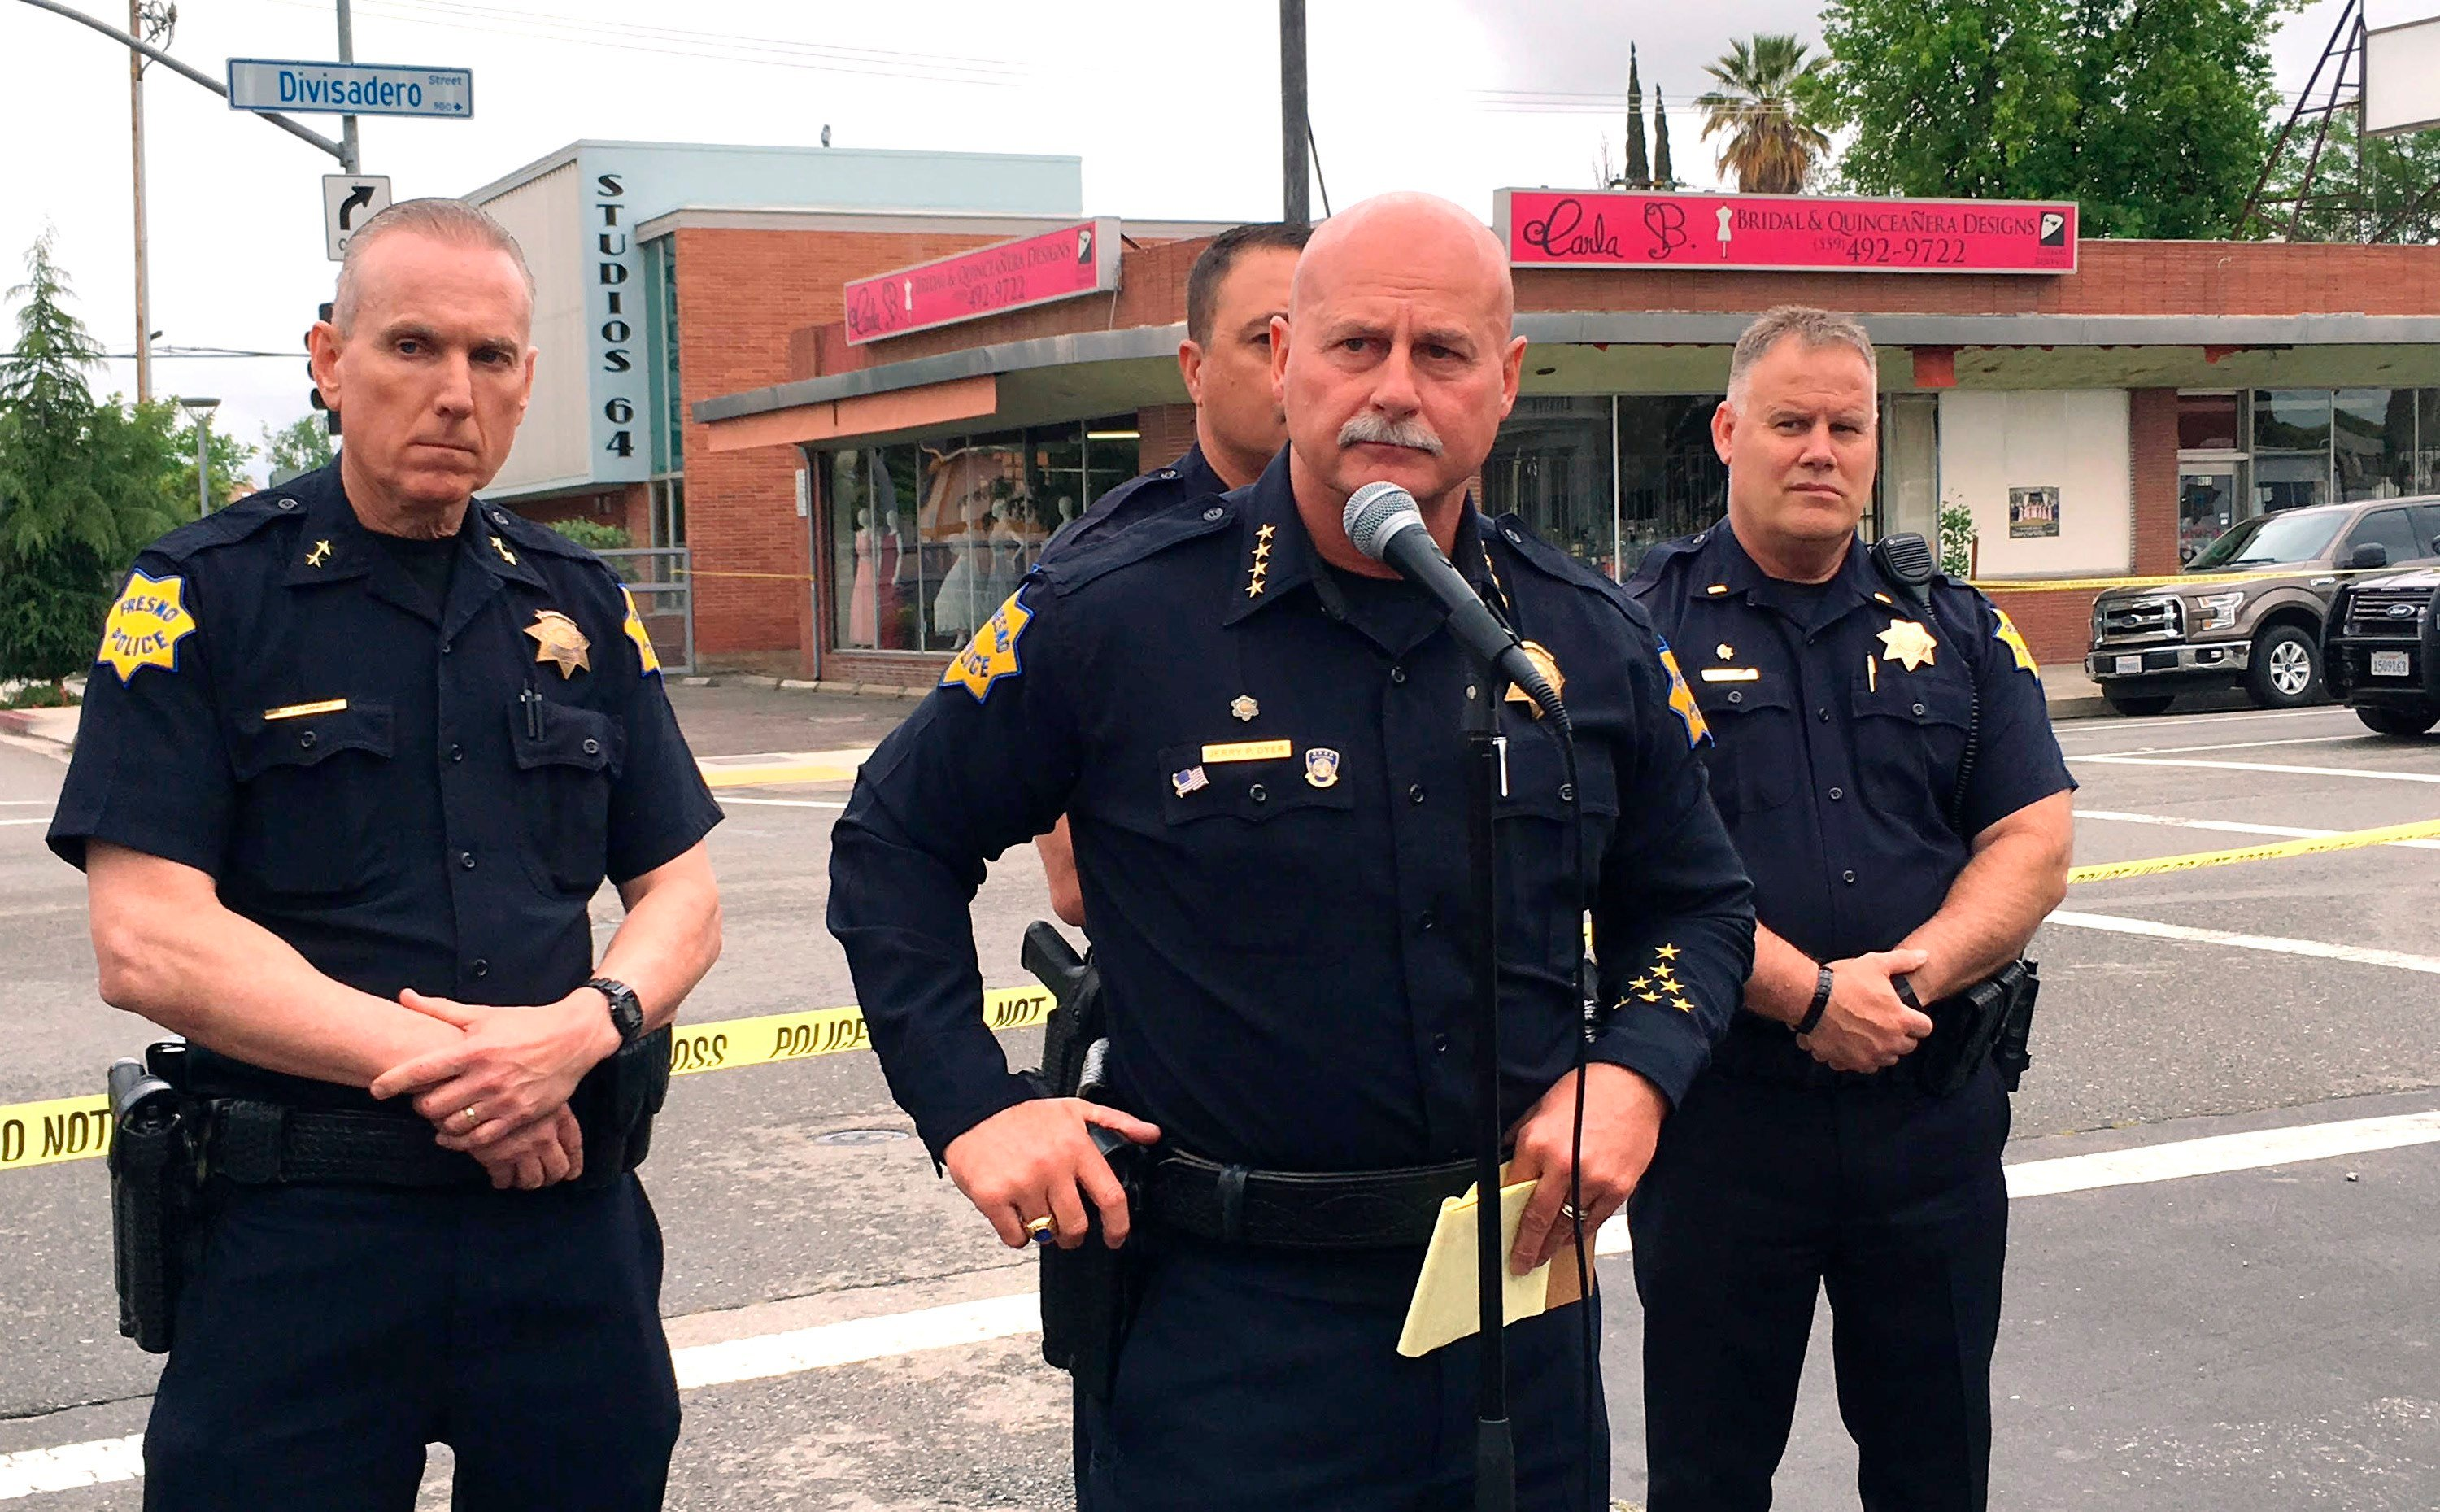 Fresno police chief Jerry Dyer, front, briefs reporters in Fresno, Calif., after a shooting Tuesday, April 18, 2017. (AP Photo/Scott Smith)